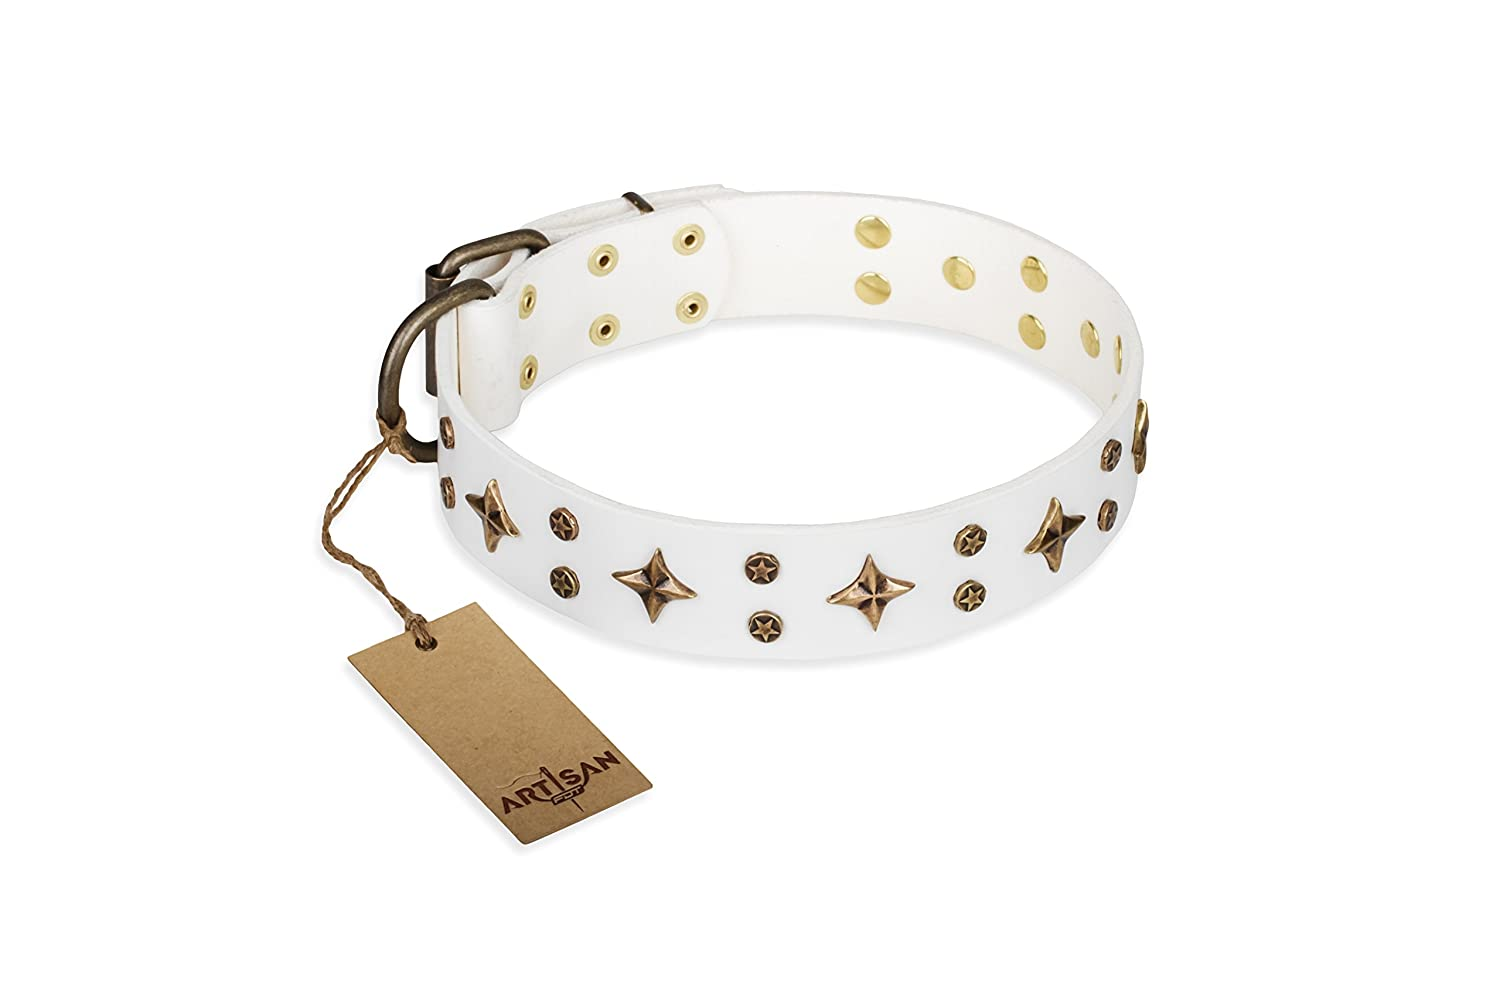 36 inch 36 inch White Leather Dog Collar with Brass Plated Decor  Refined Stars  Handcrafted by Artisan